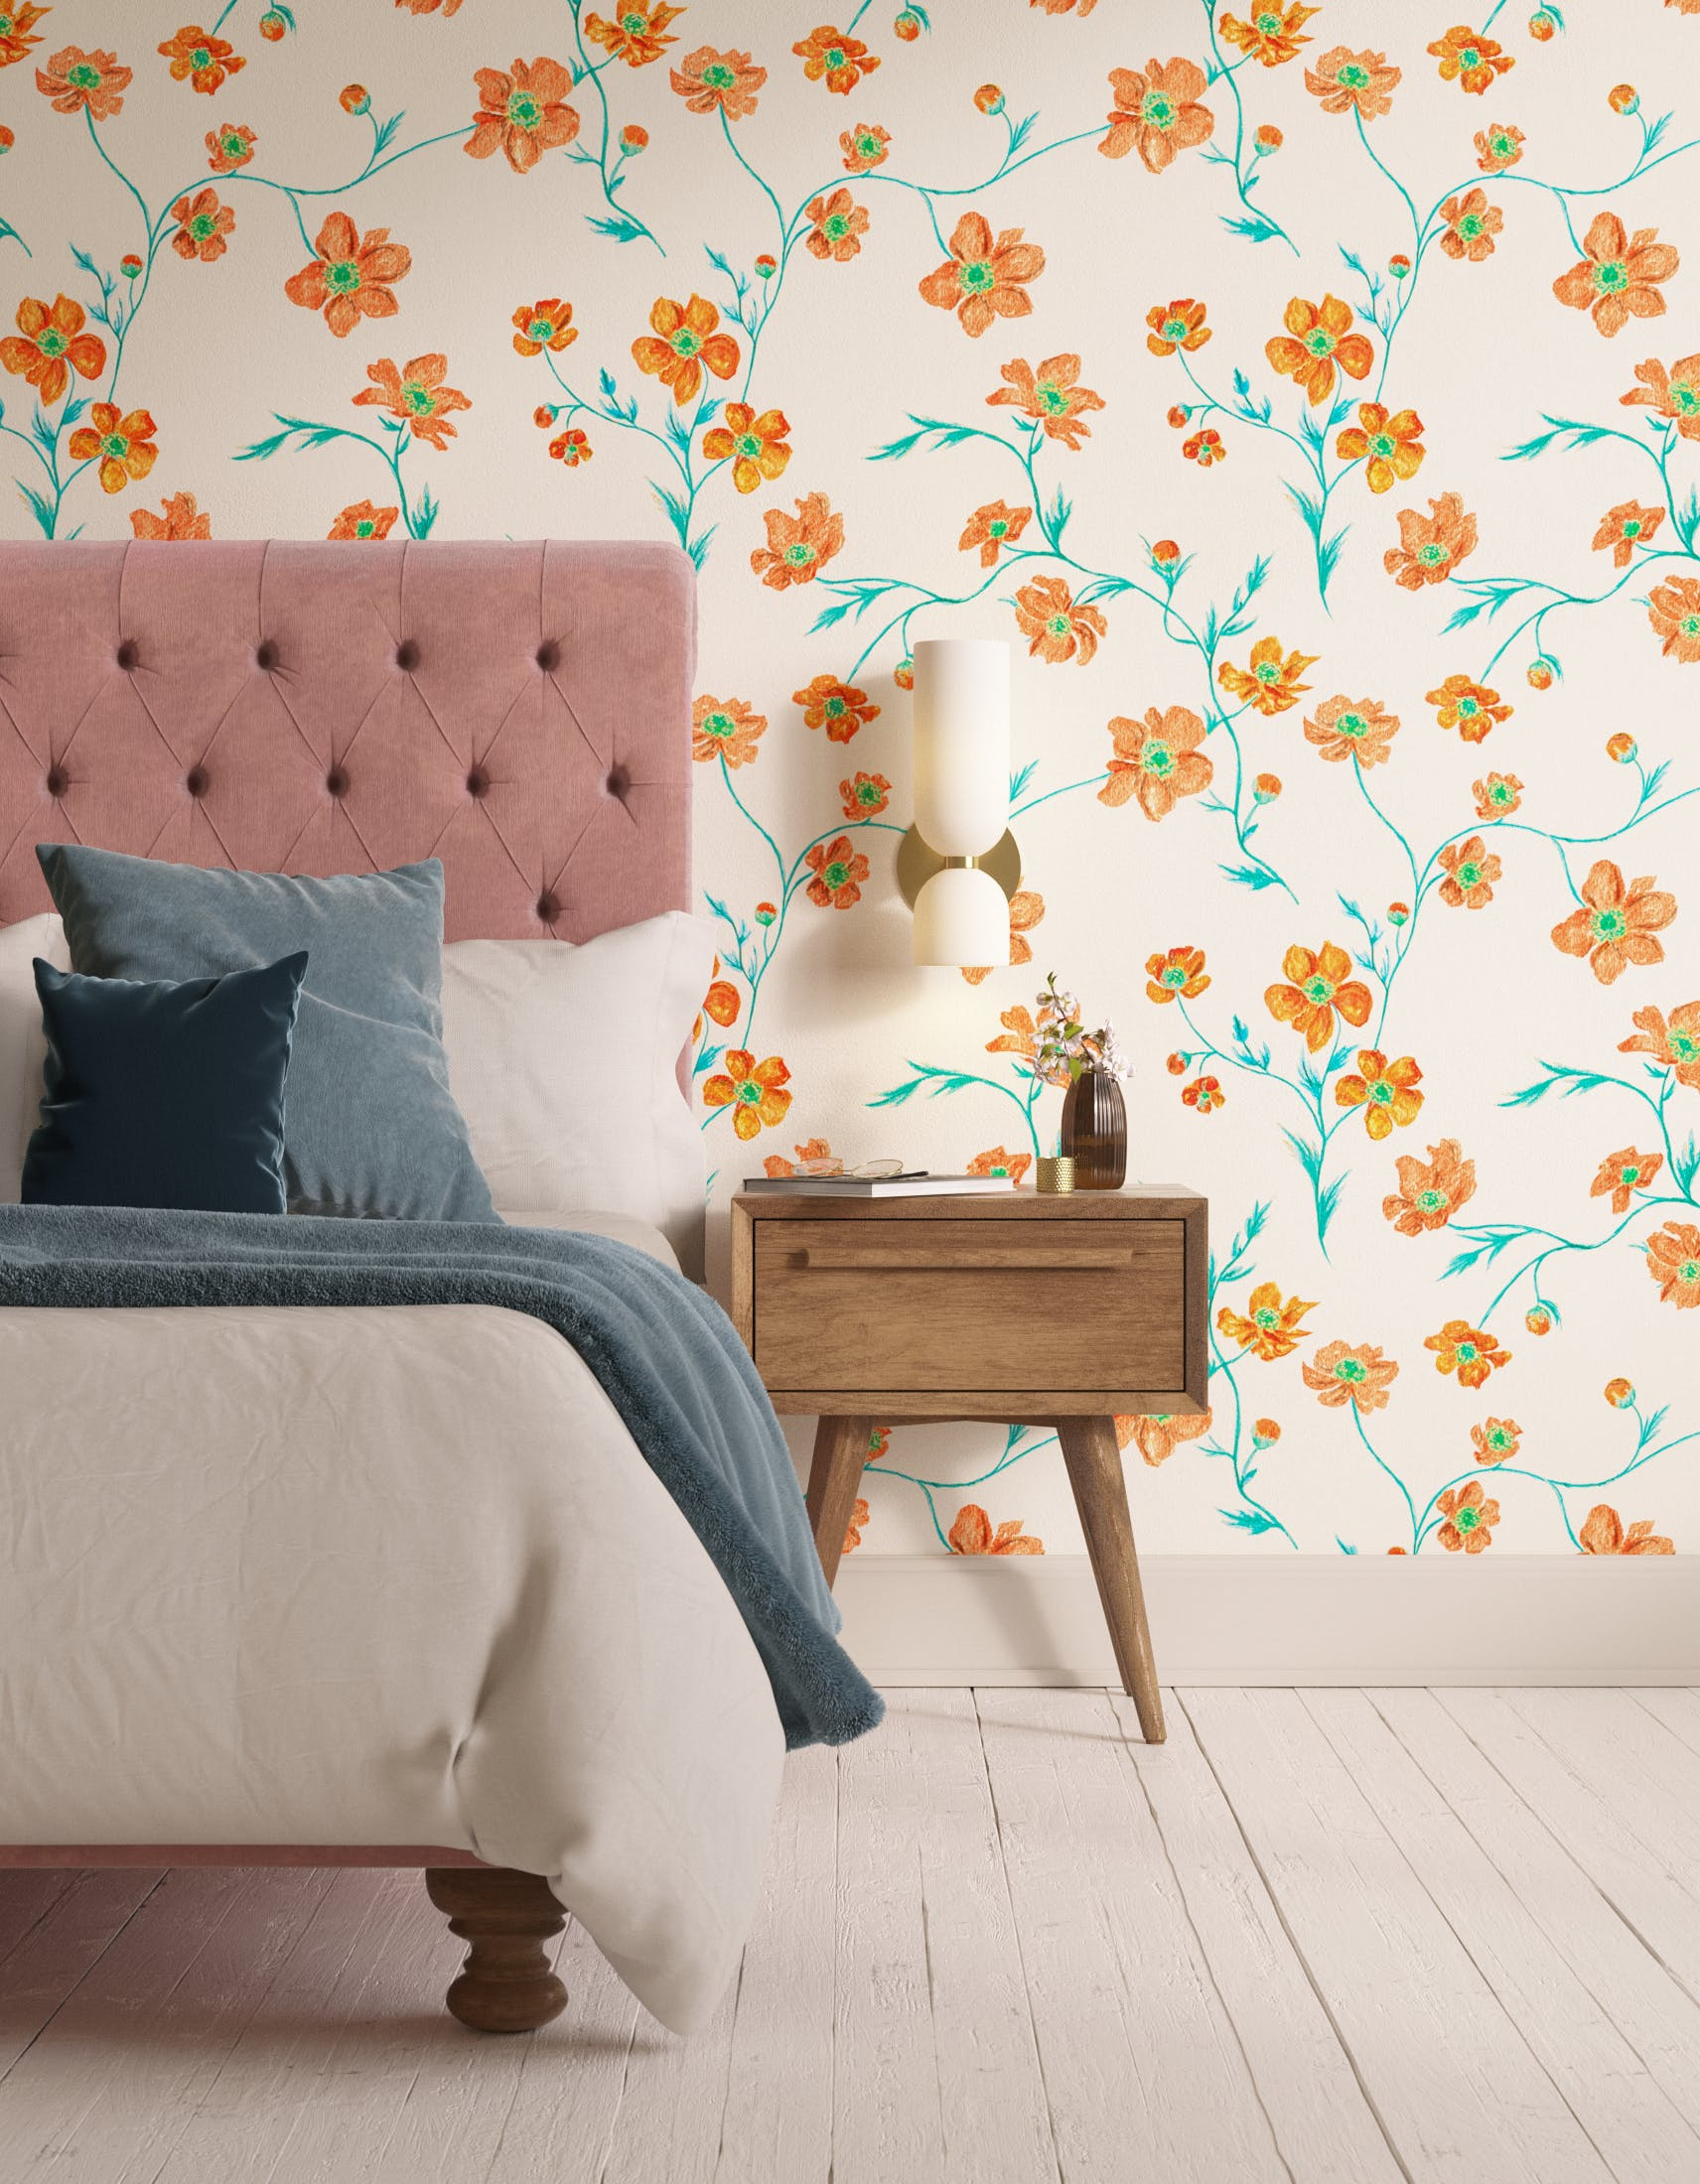 Bedroom decorated with Lick x Jenna Hewitt Anemone 02 orange floral wallpaper